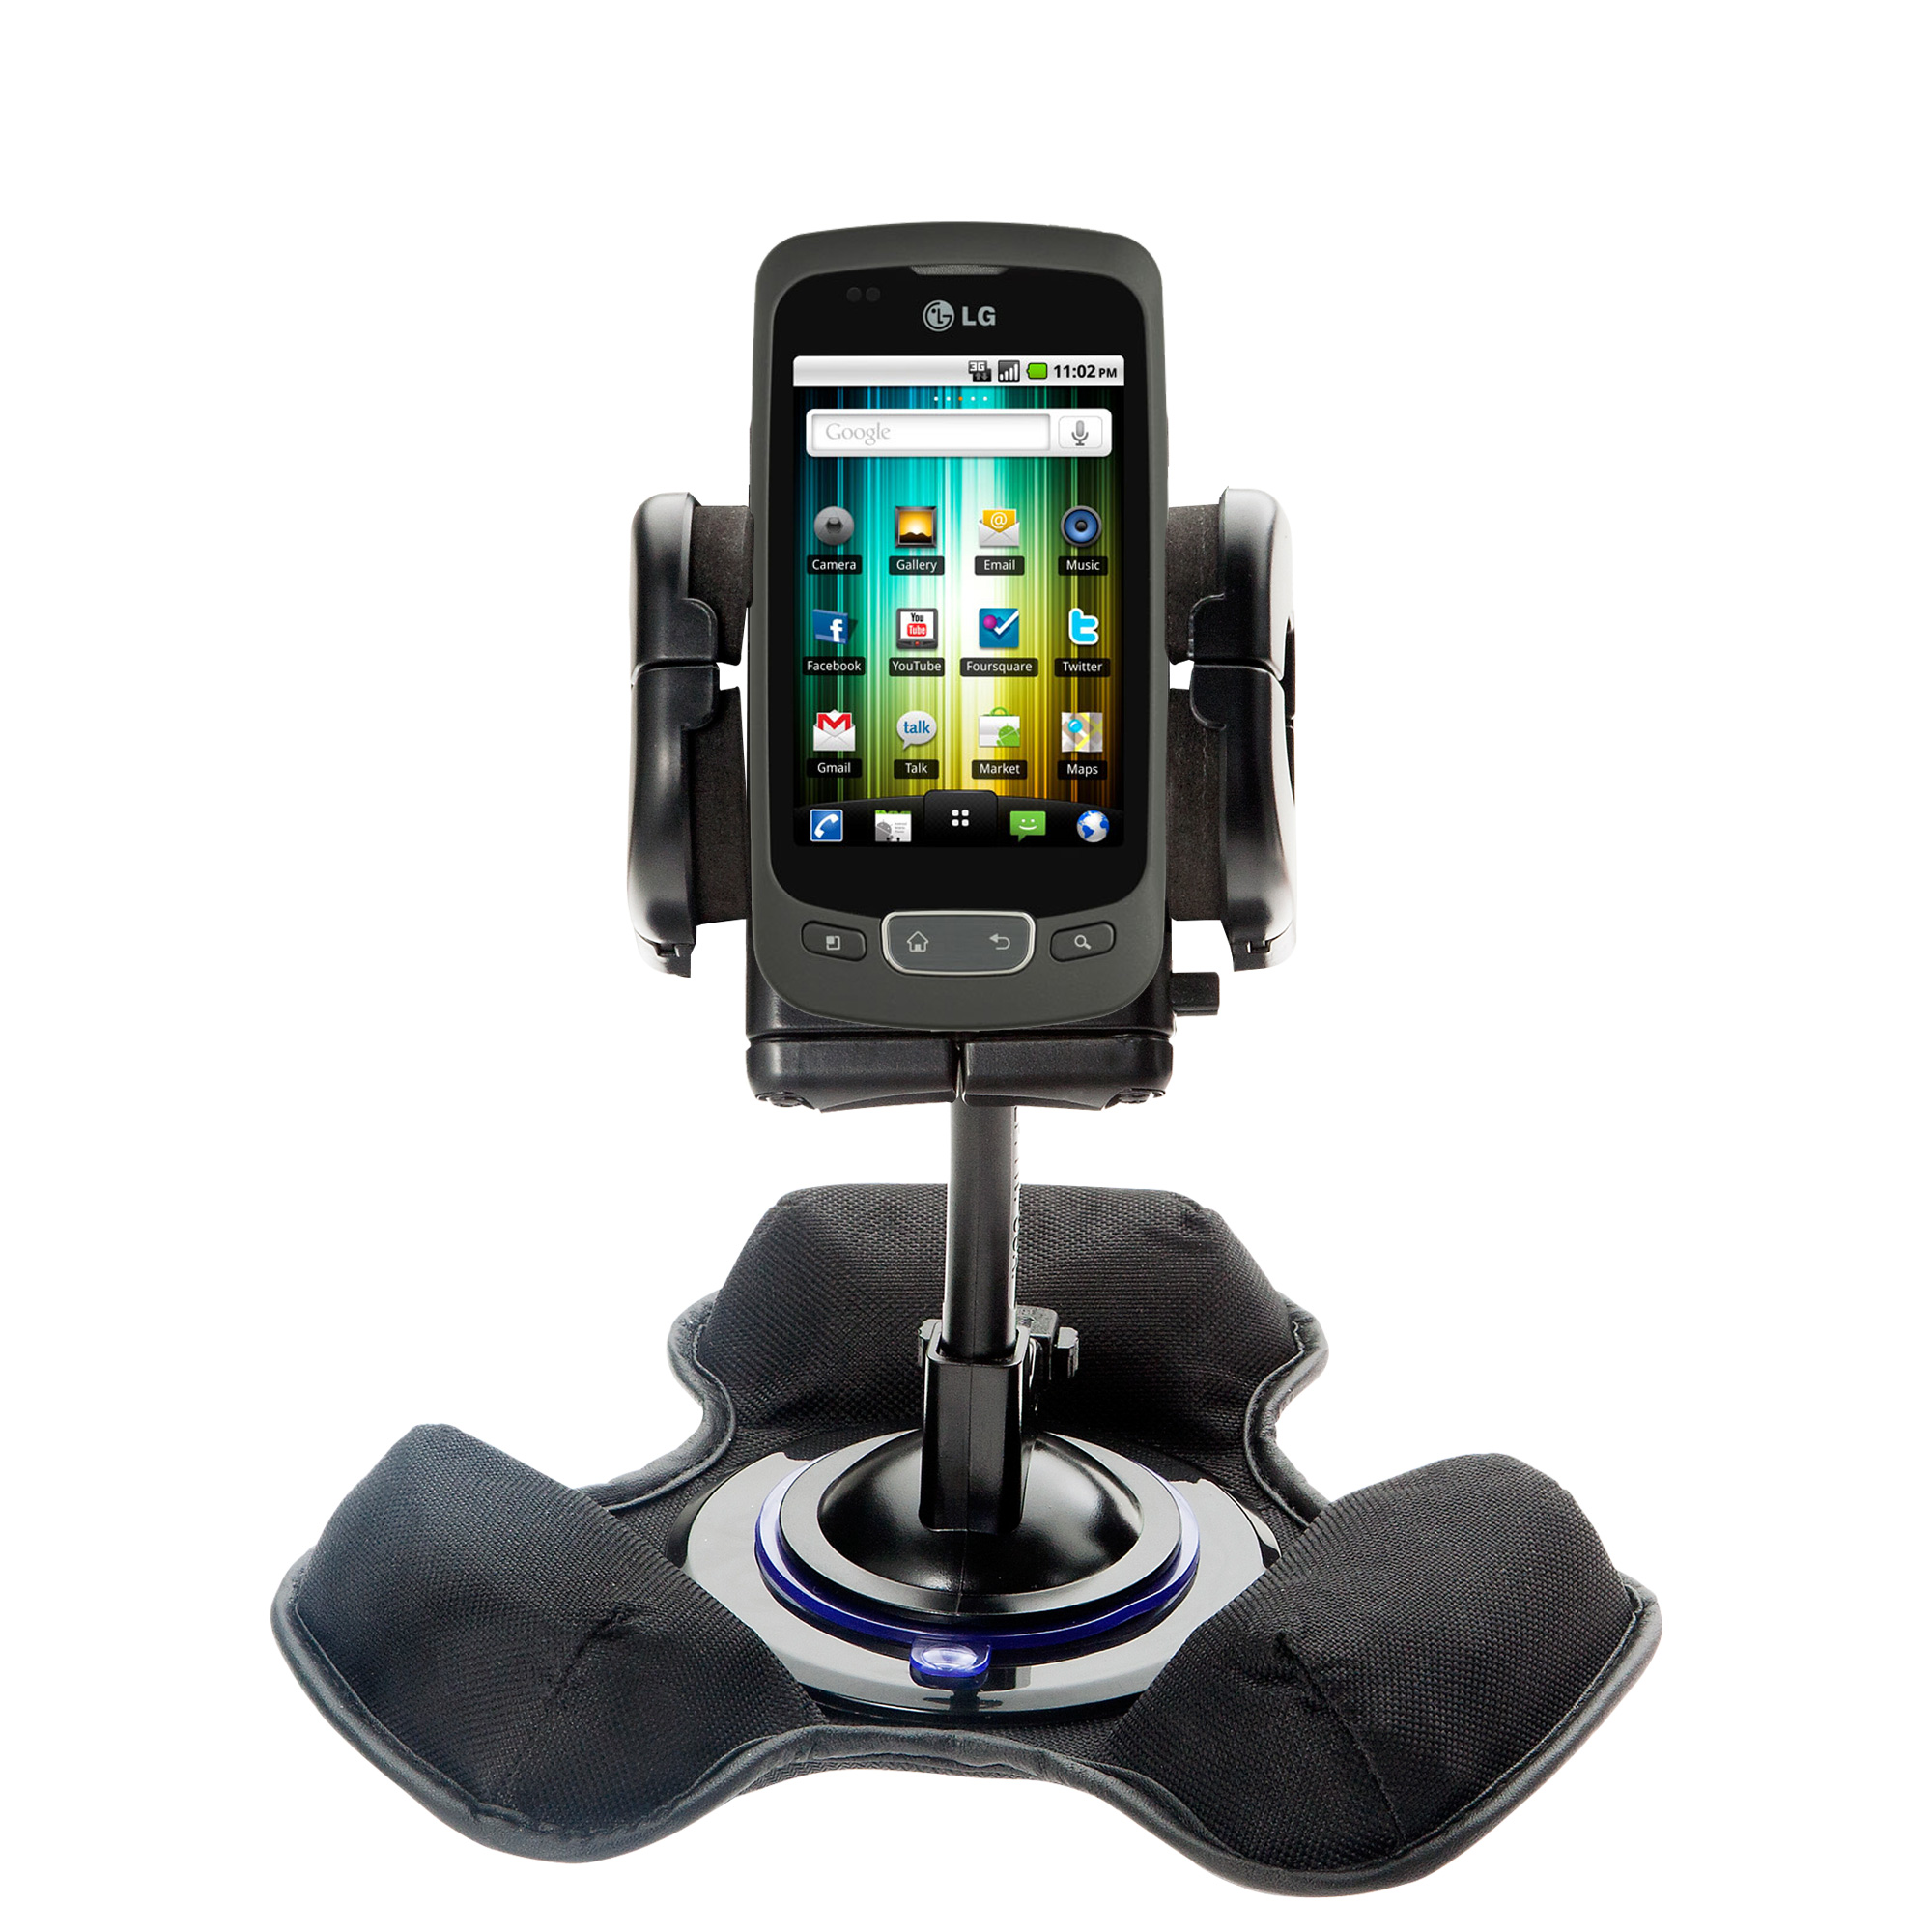 Dash and Windshield Holder compatible with the LG Optimus T